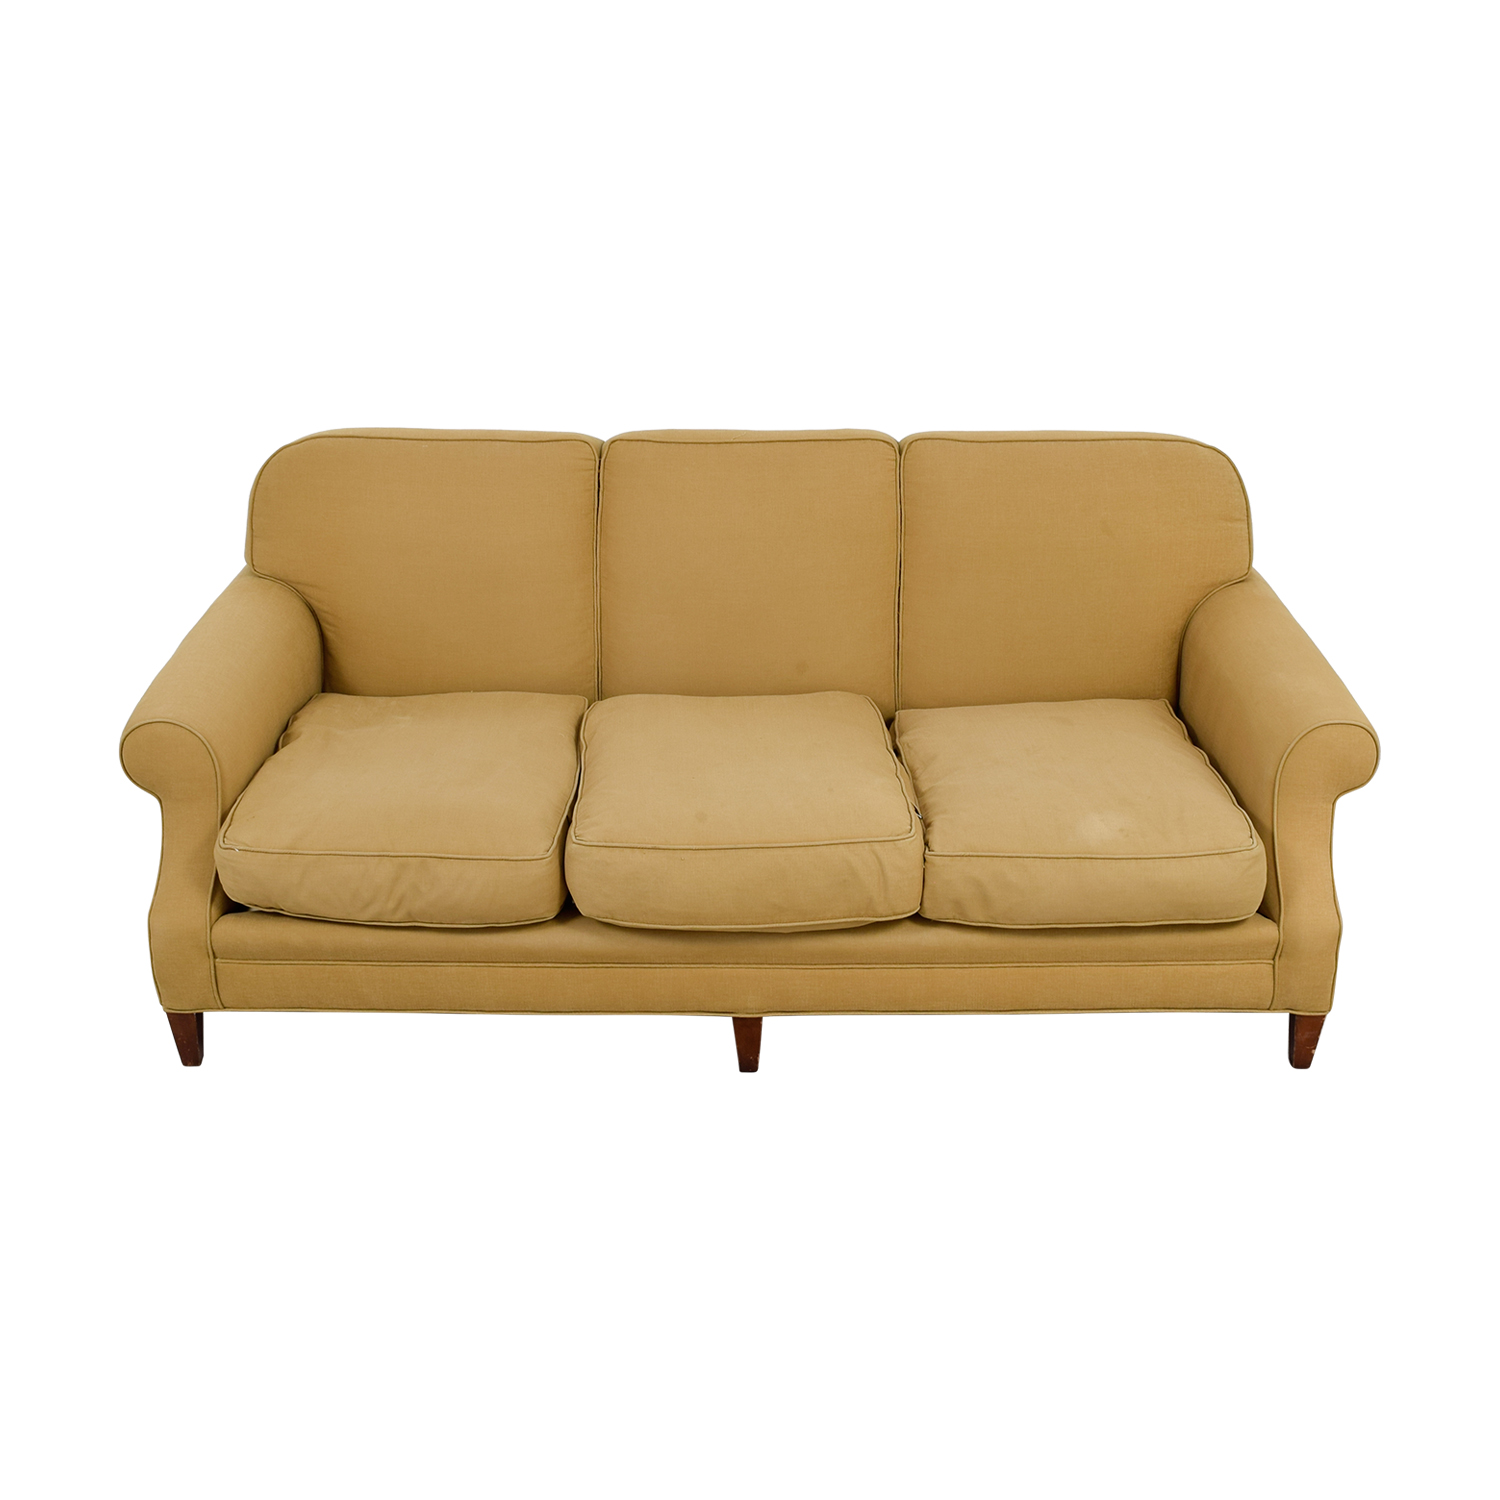 Beige Three Cushion Couch coupon